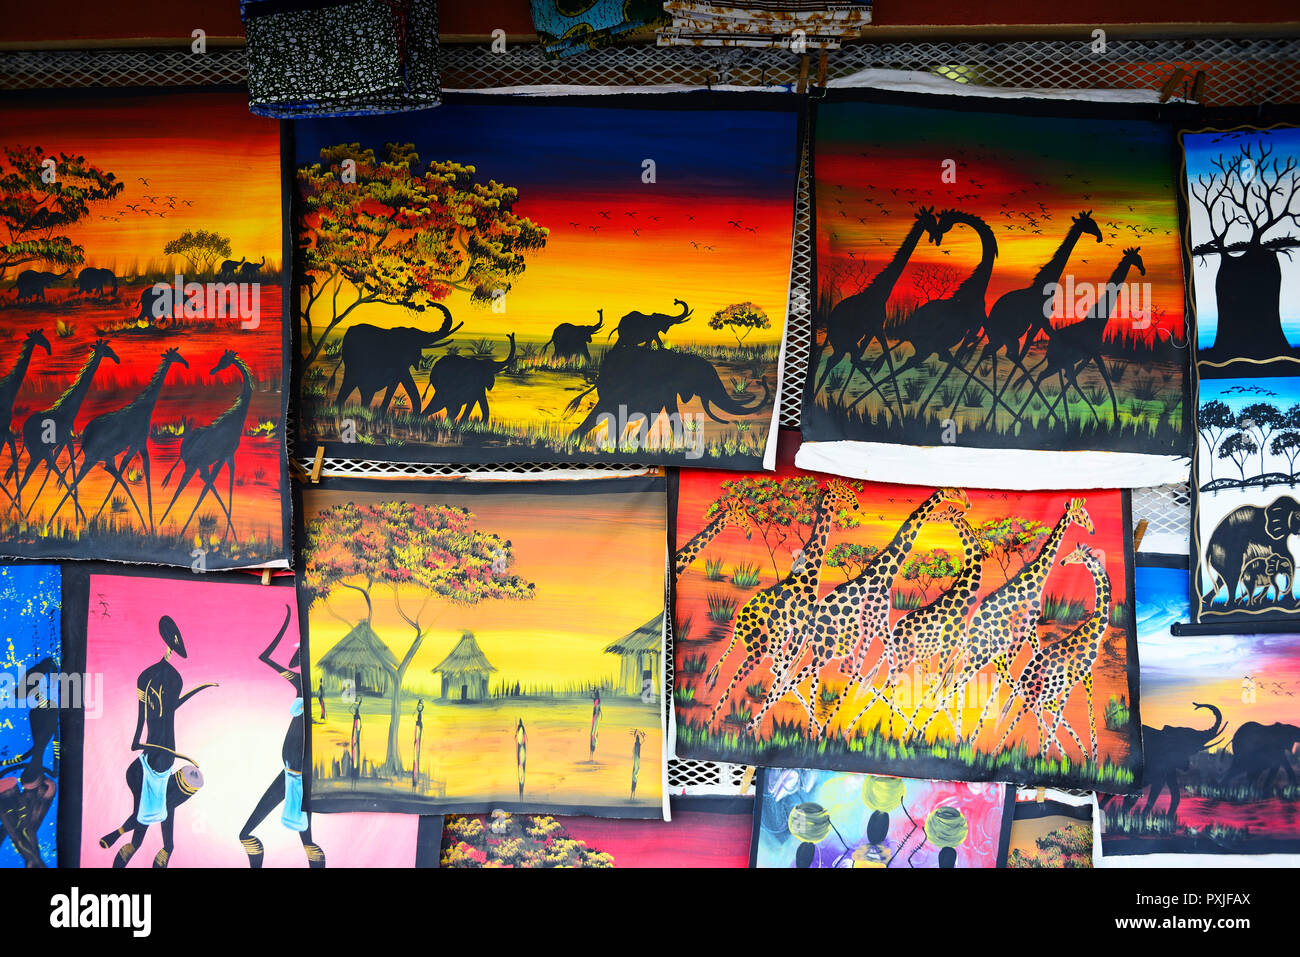 Naive painting in Livingstone, Zambia - Stock Image